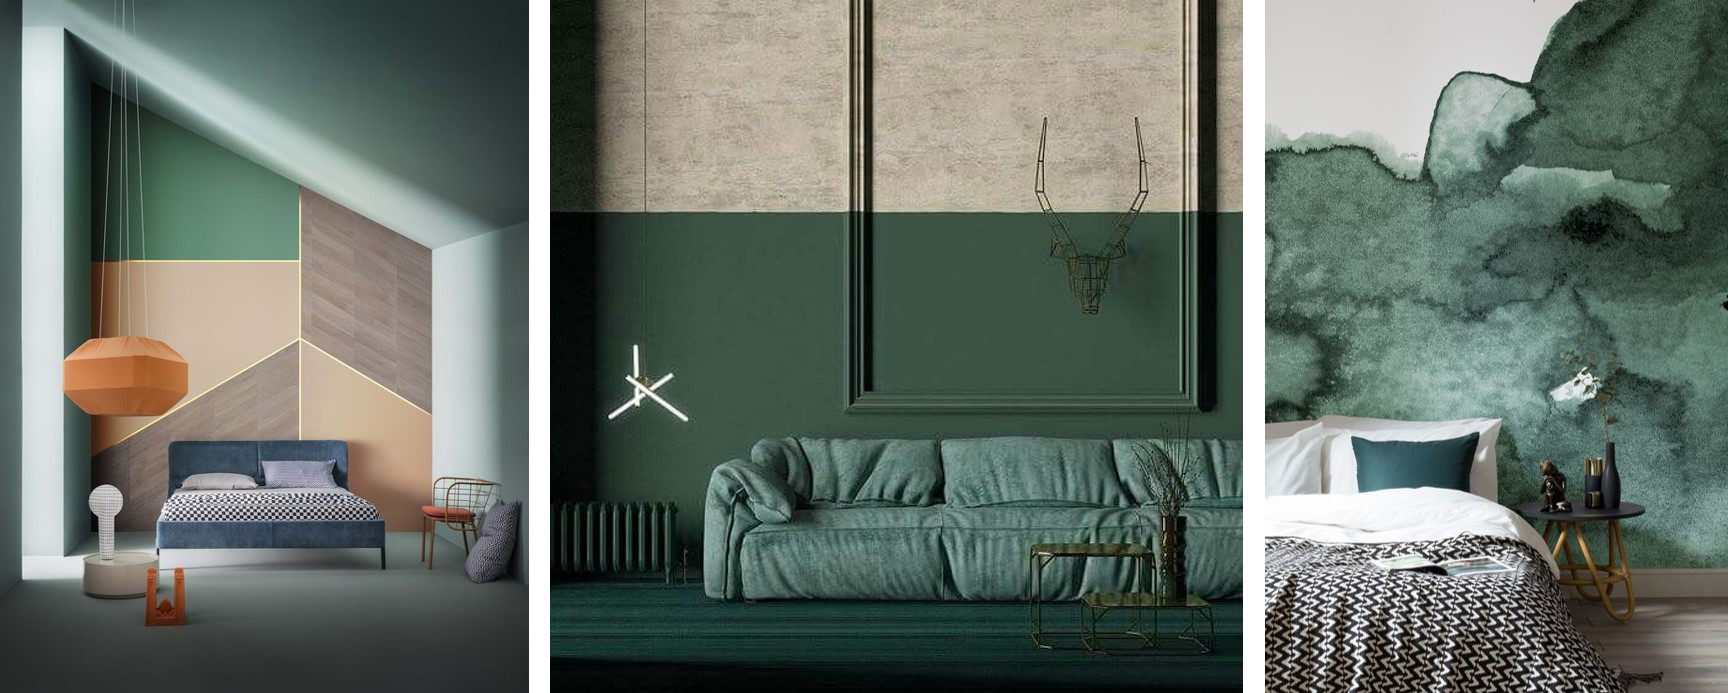 Interieur trends 2018 woontrends 2018 for Interieur trends